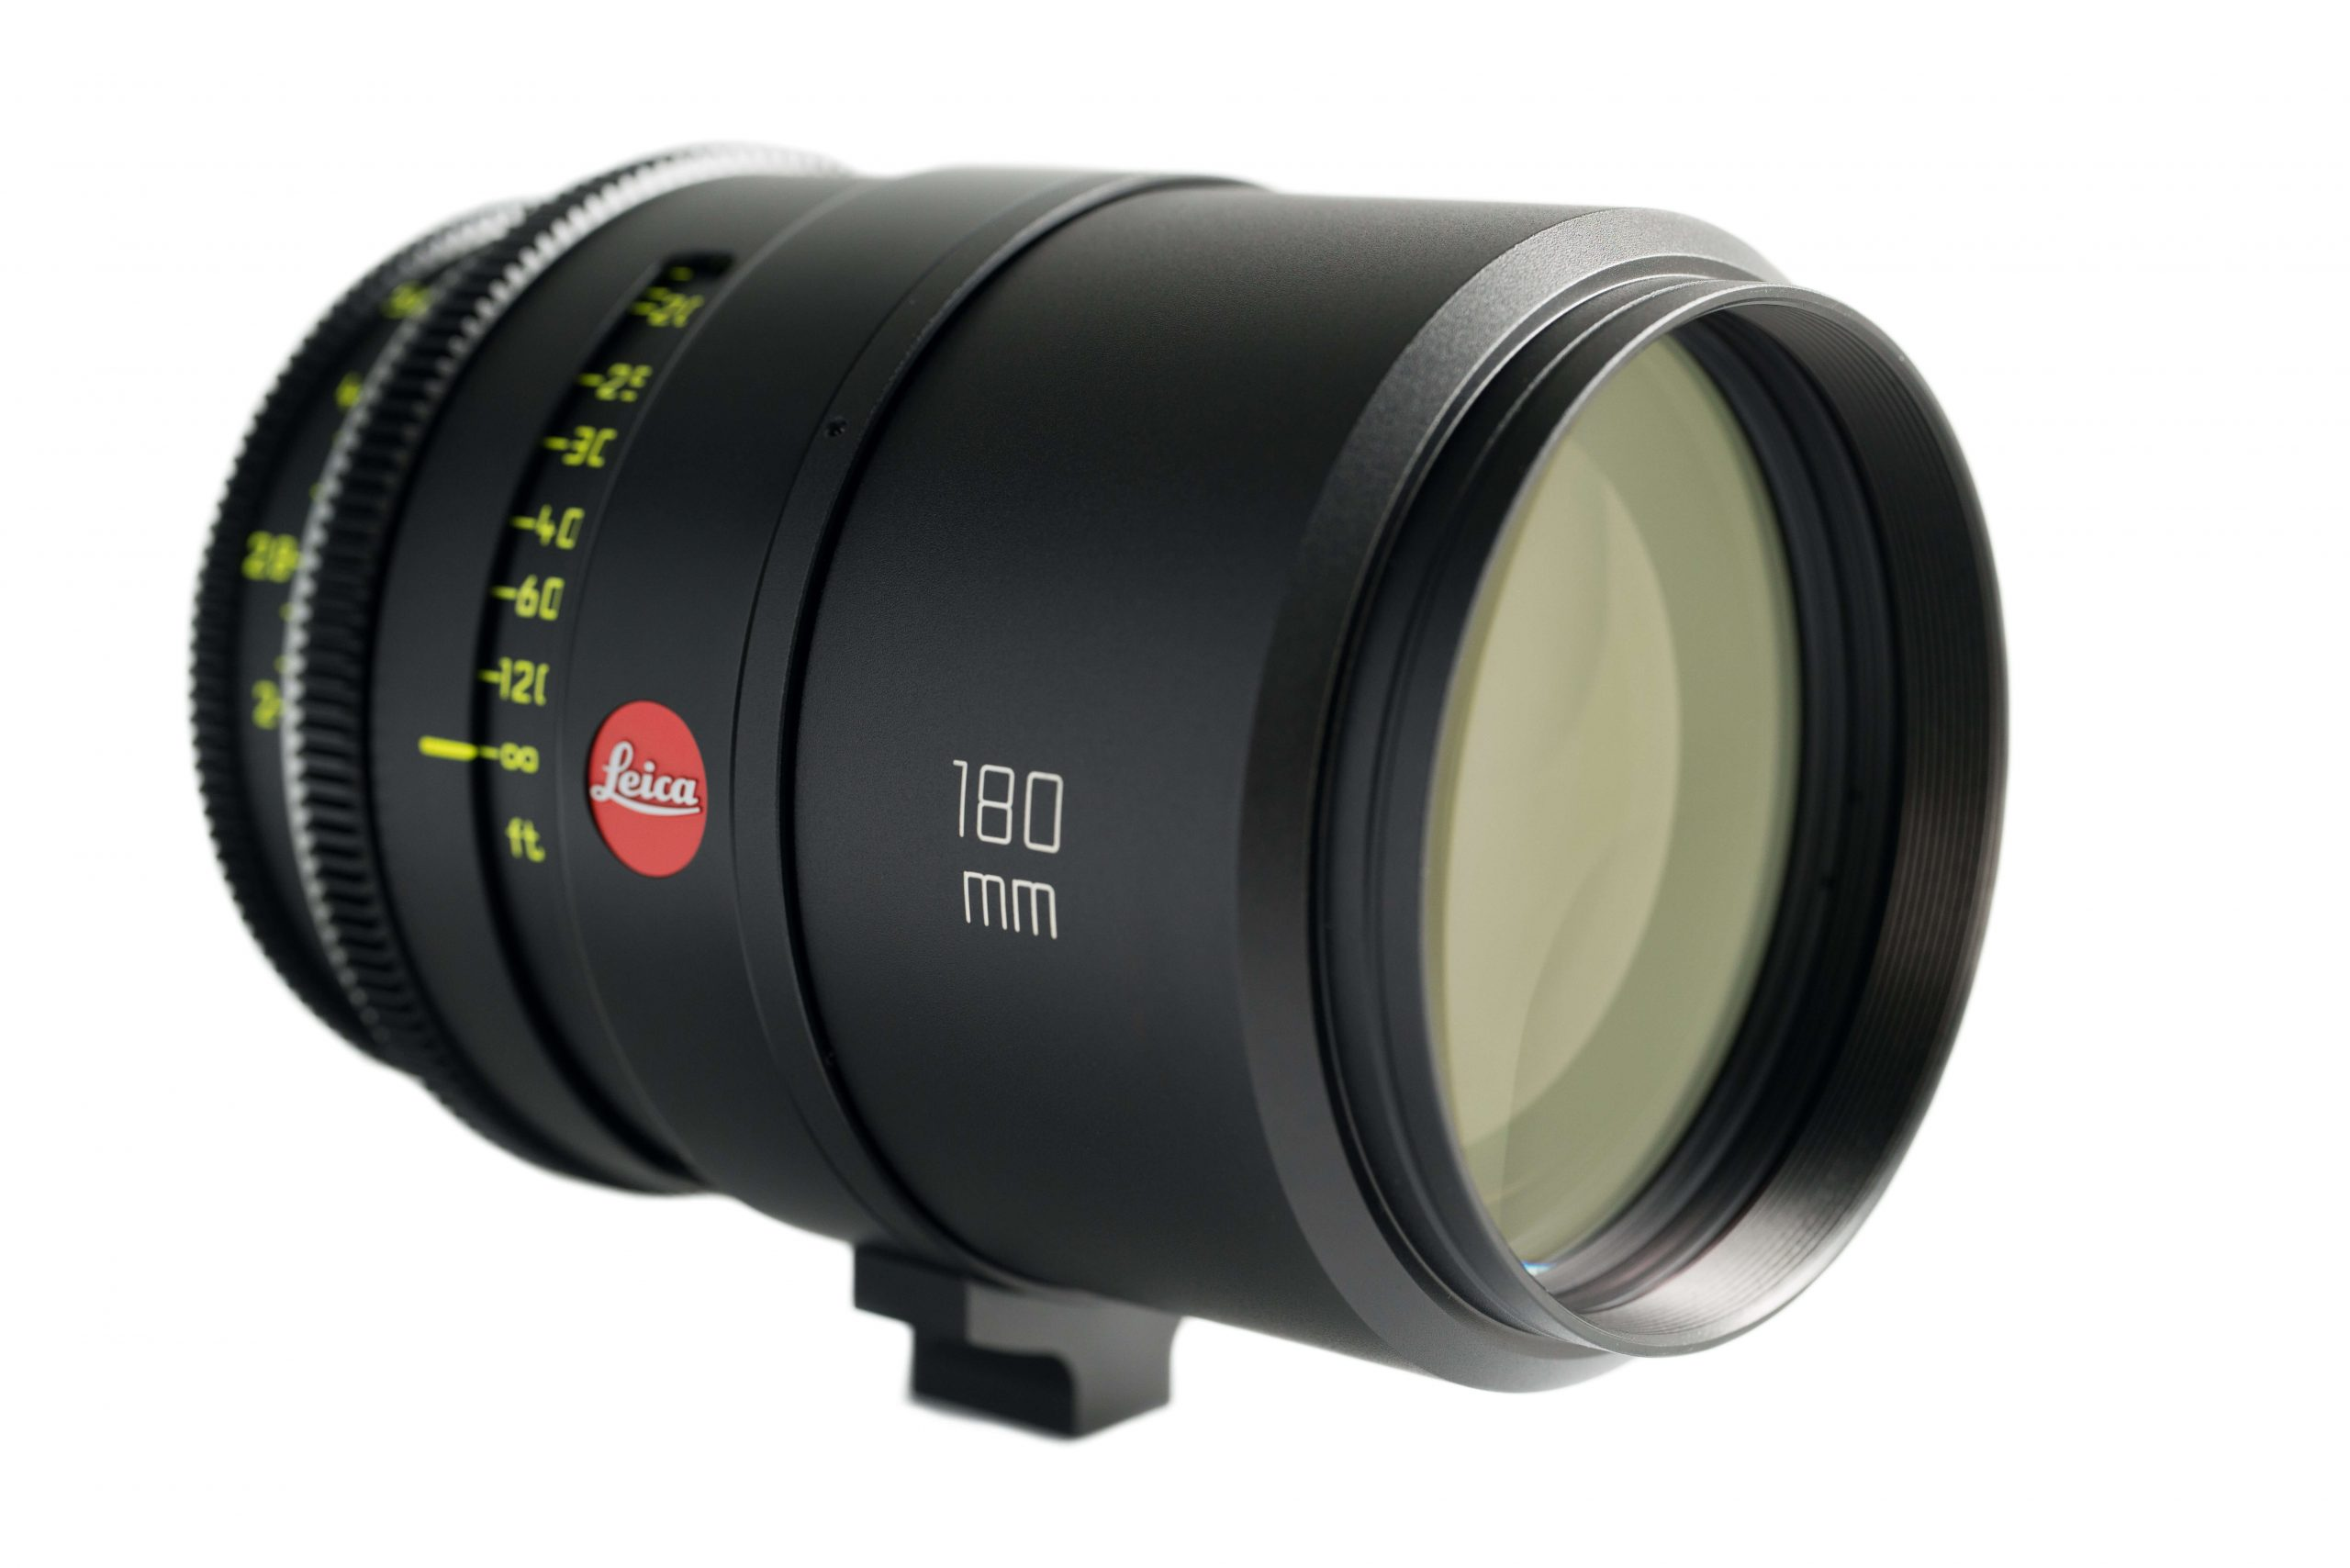 180mm Leica Cine T2 side view